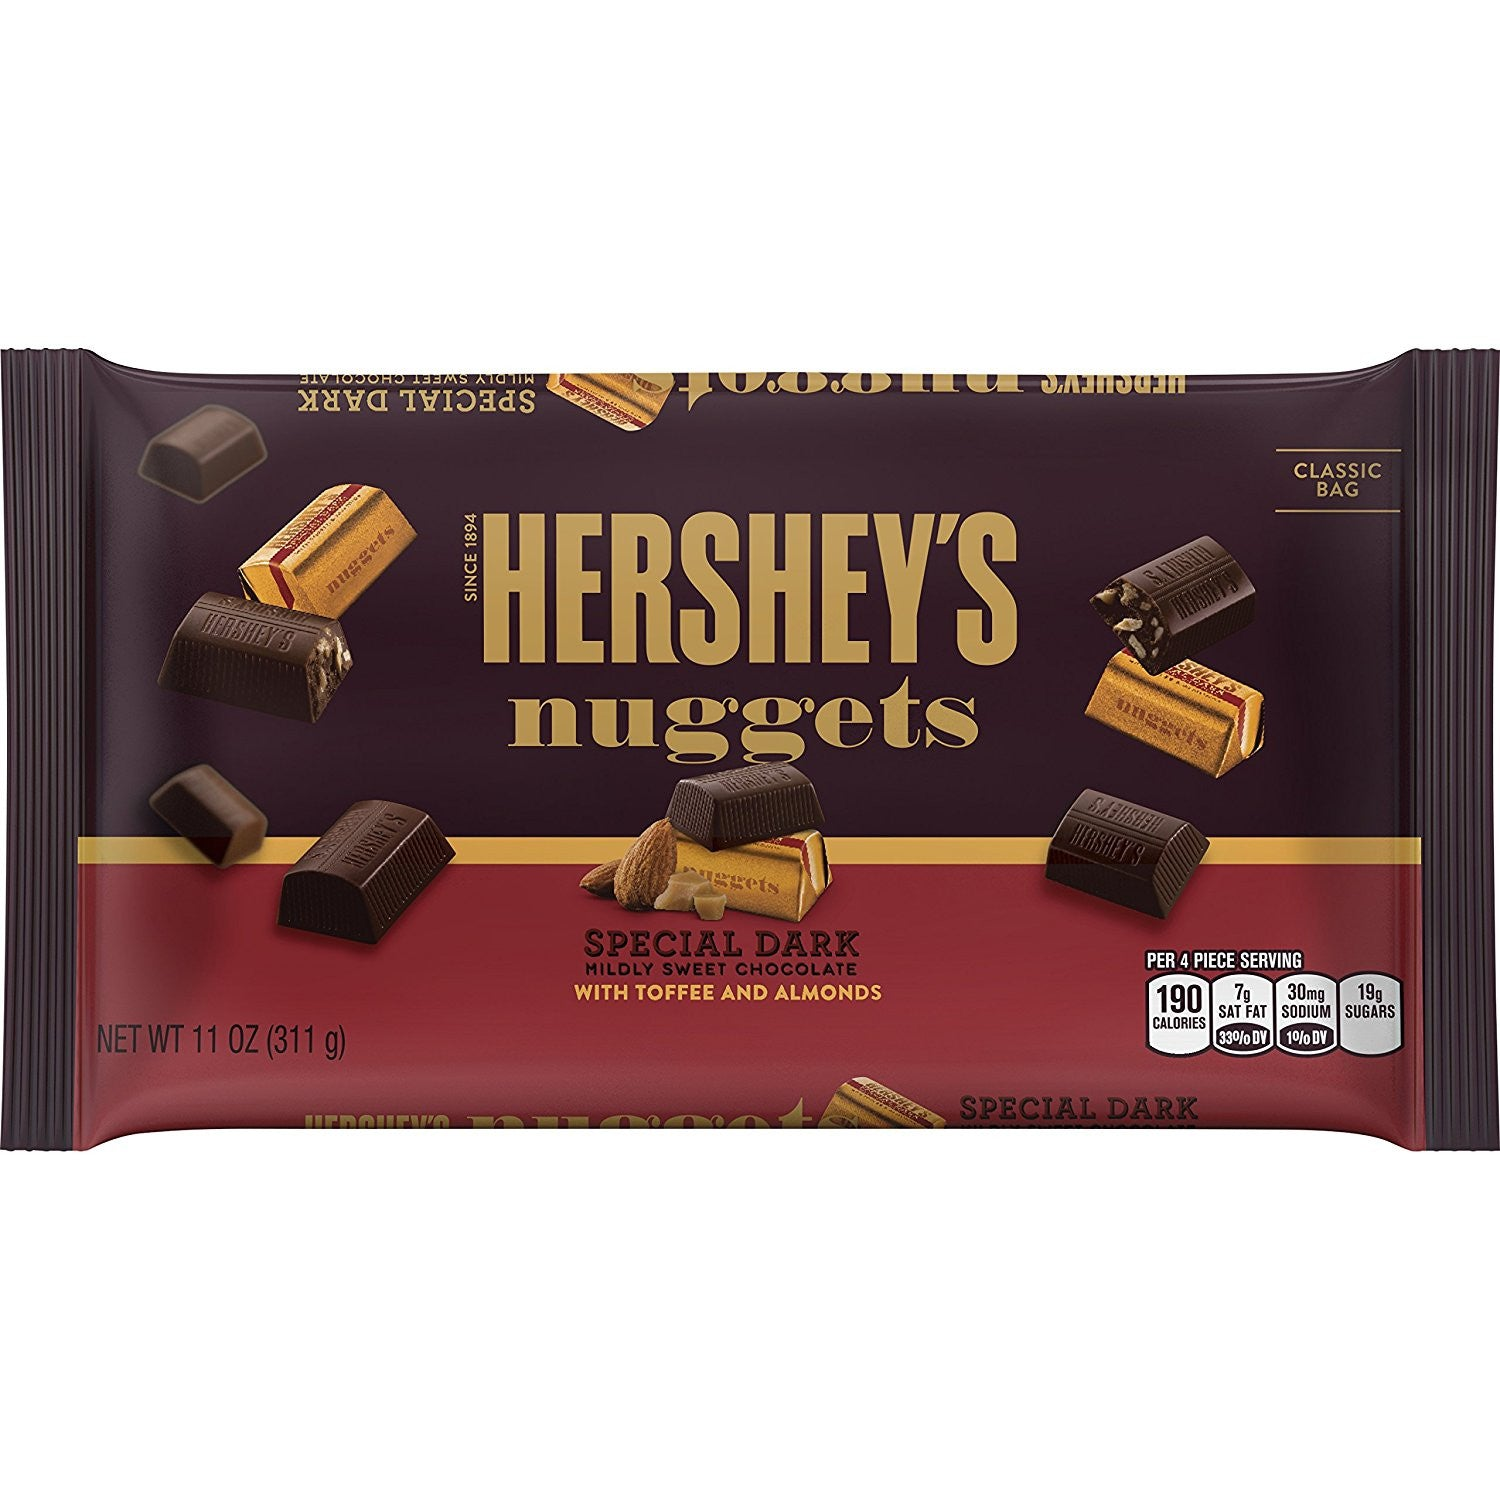 HERSHEY'S Nuggets SPECIAL DARK Mildly Sweet Chocolate with Toffee and Almonds (11-Ounce Bag)